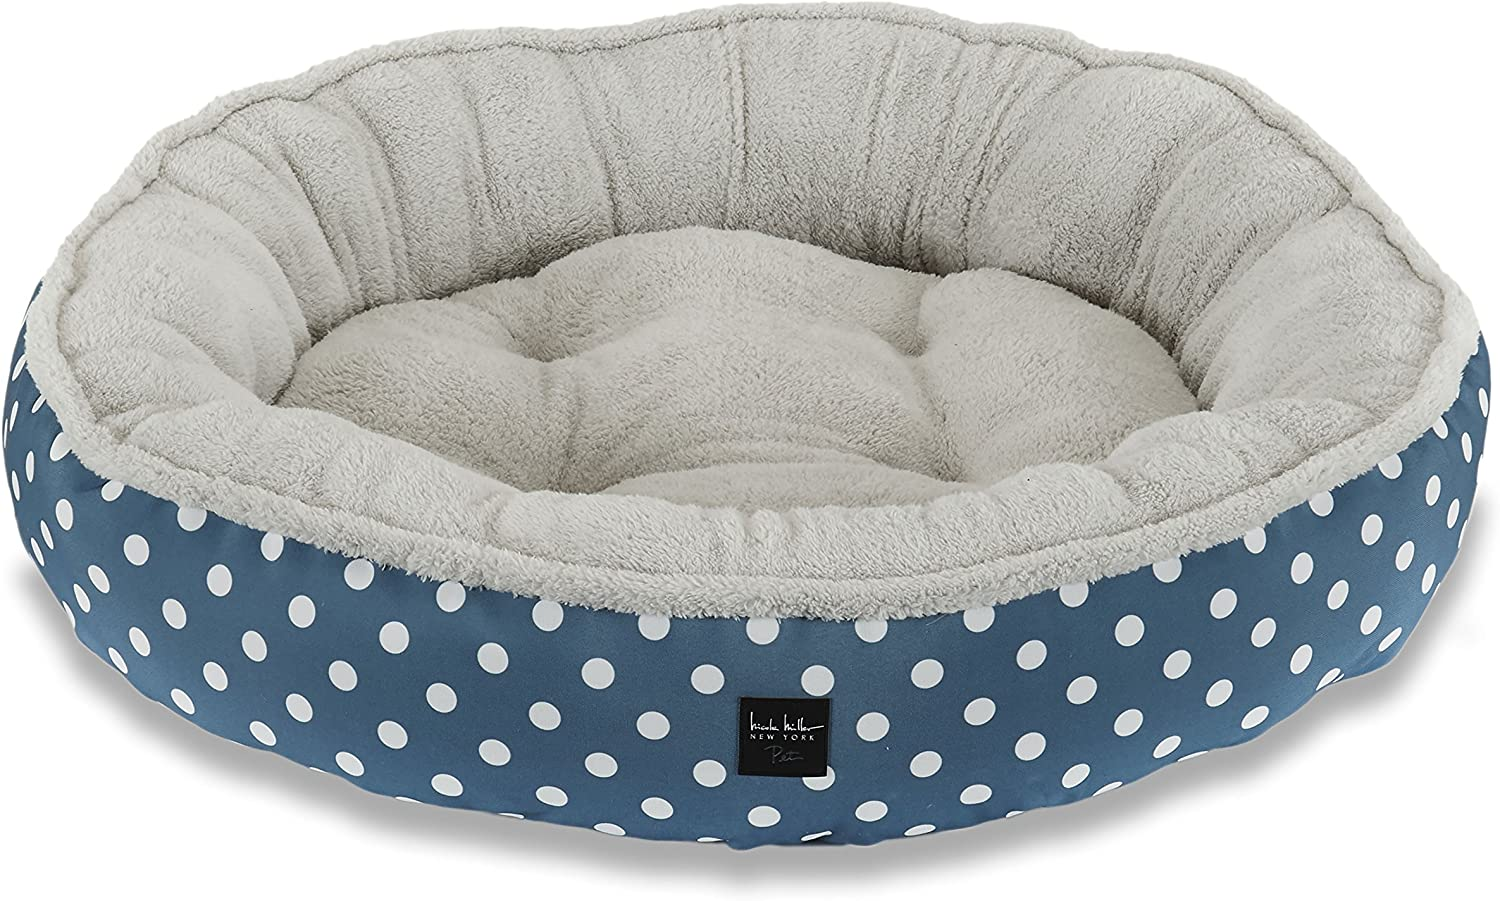 Home Dynamix HD119309 Nicole Miller Comfy Pooch Pet Bed, 30 Inch Round, bluee Polkadots